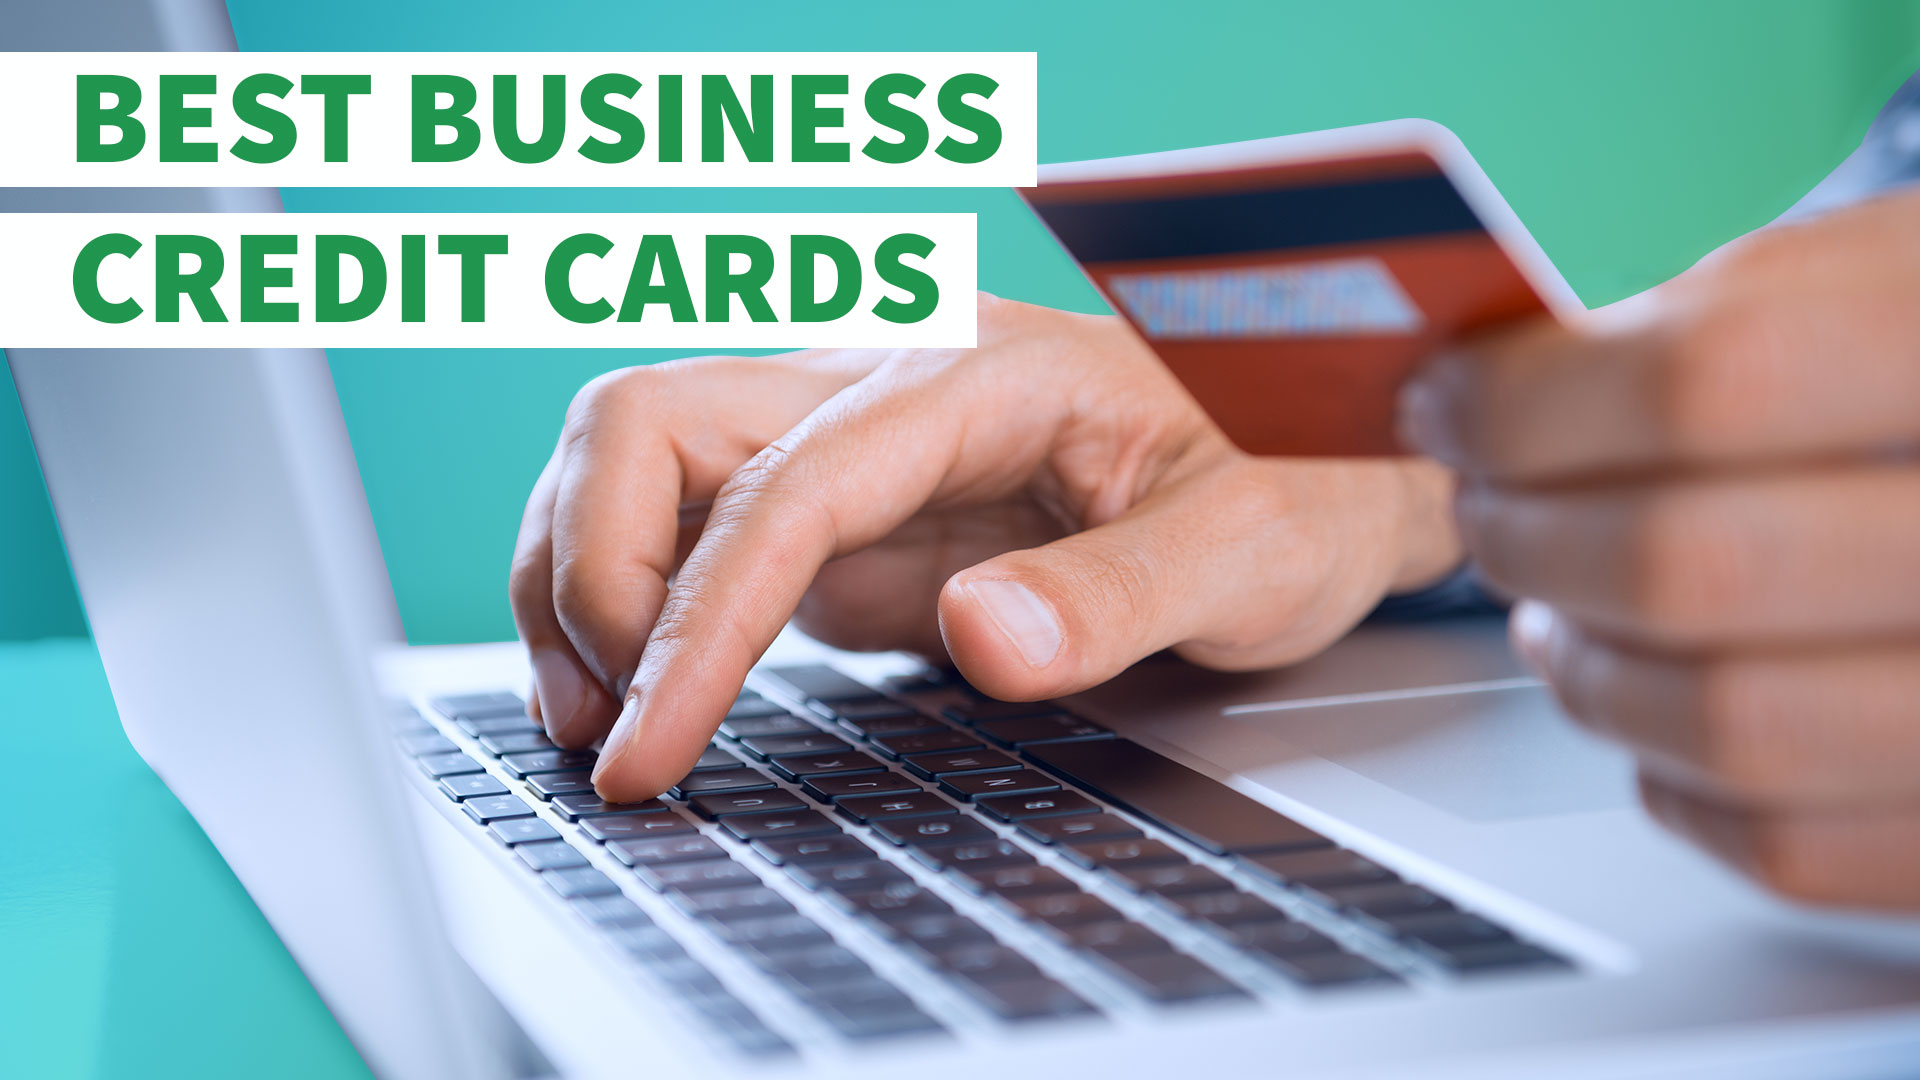 Chase Citi and 9 More Best Business Credit Cards